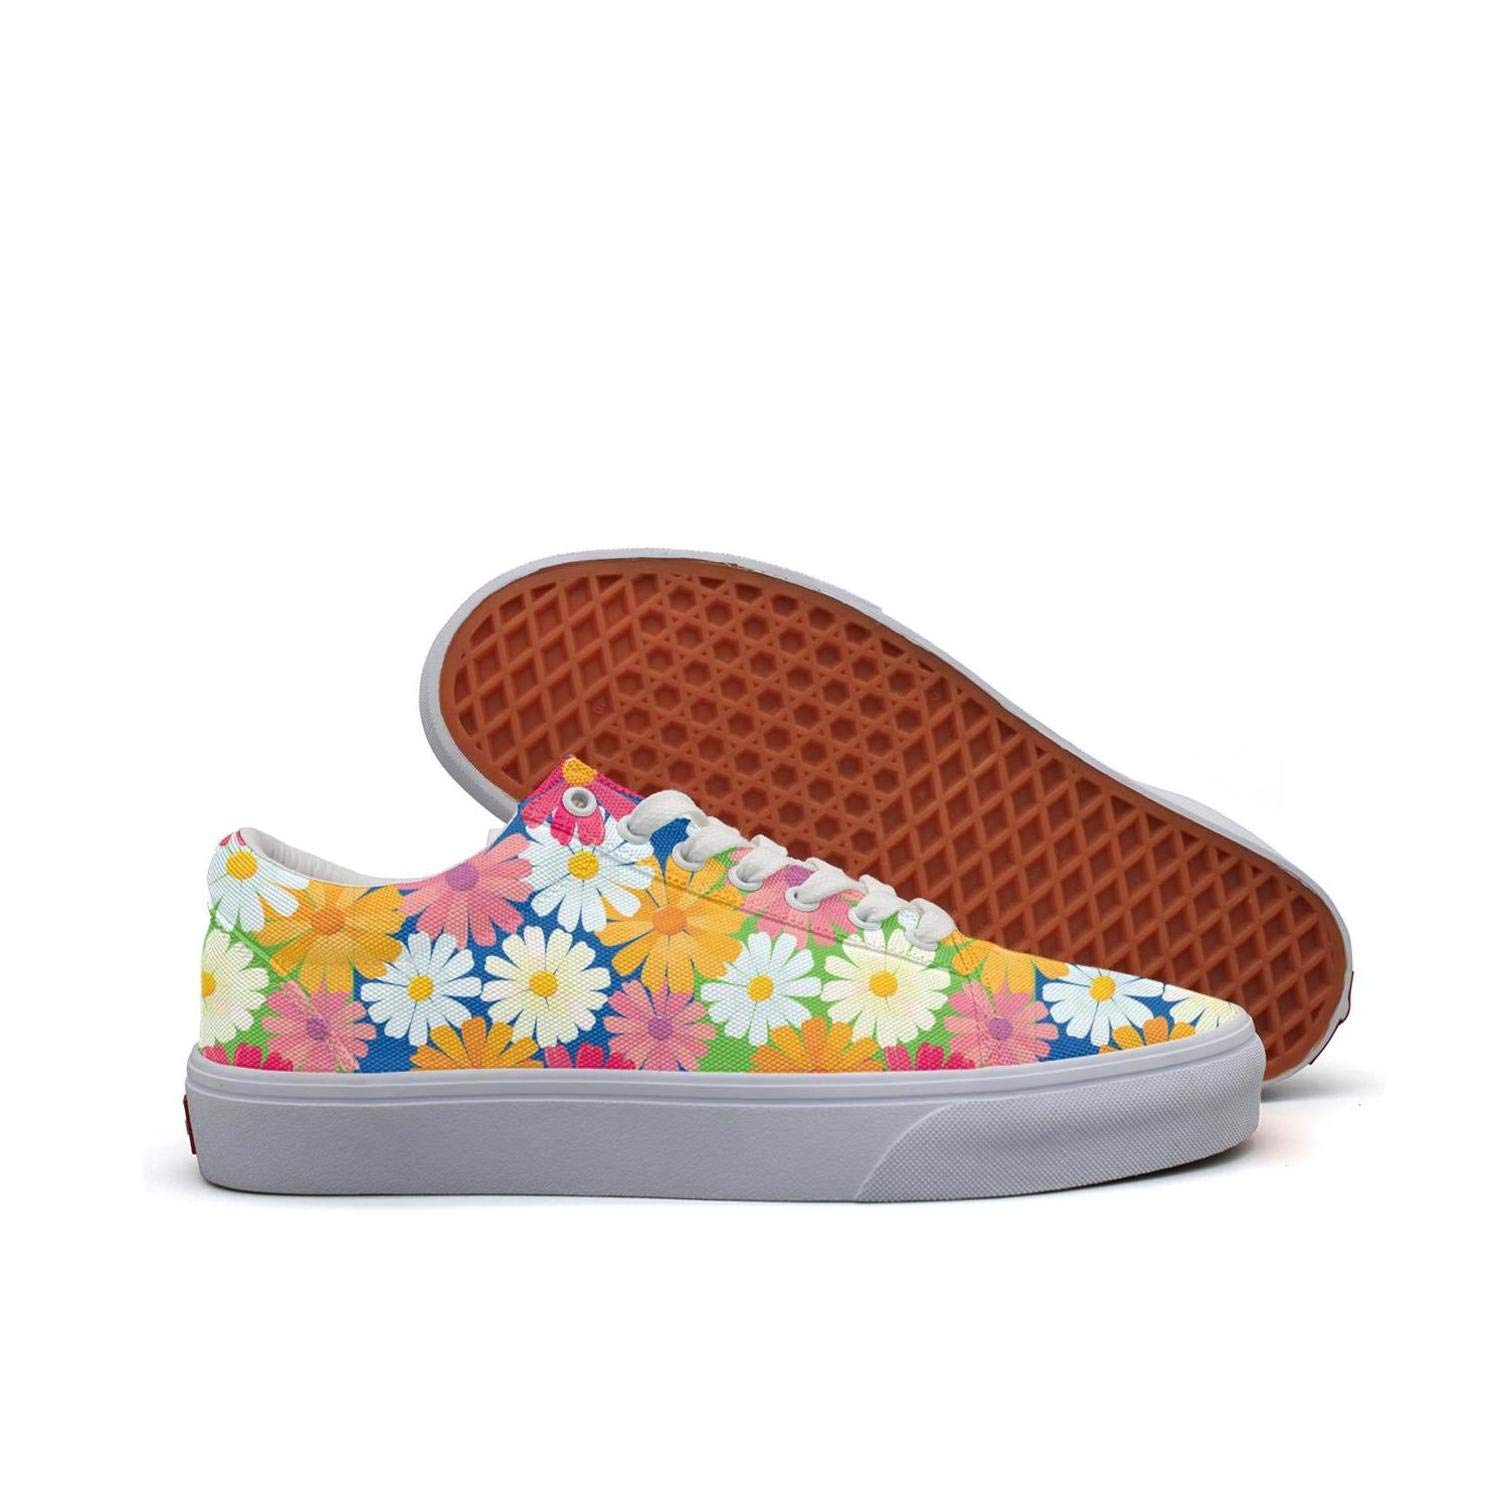 Lingxxshow Textures Daisy Flowers Chrysanthemum Floral Low Top Canvas Sneakers Skateboard Shoes Slip on Lace-up Fashion Sneaker Shoe Women